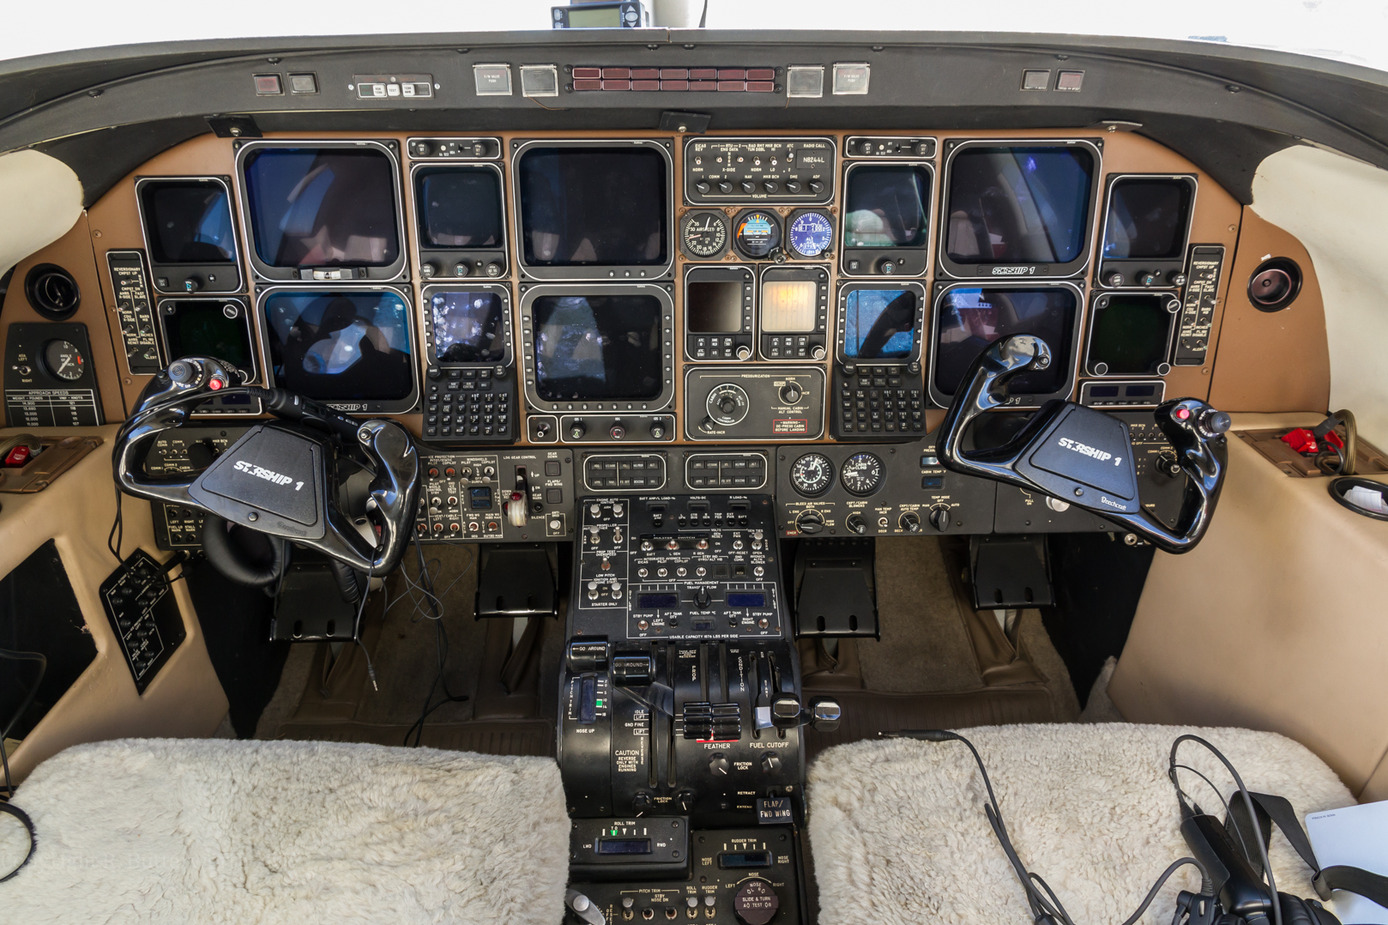 bell helicopter for sale with Hawker Beechcraft Starship I Specs And Description on Bell 47 10 further Bell 407 Civil Utility Helicopter Textron Inc moreover 1983 cessna T210n in addition Eurocopter Ec225 Super Puma in addition Mh 6 Little Bird.